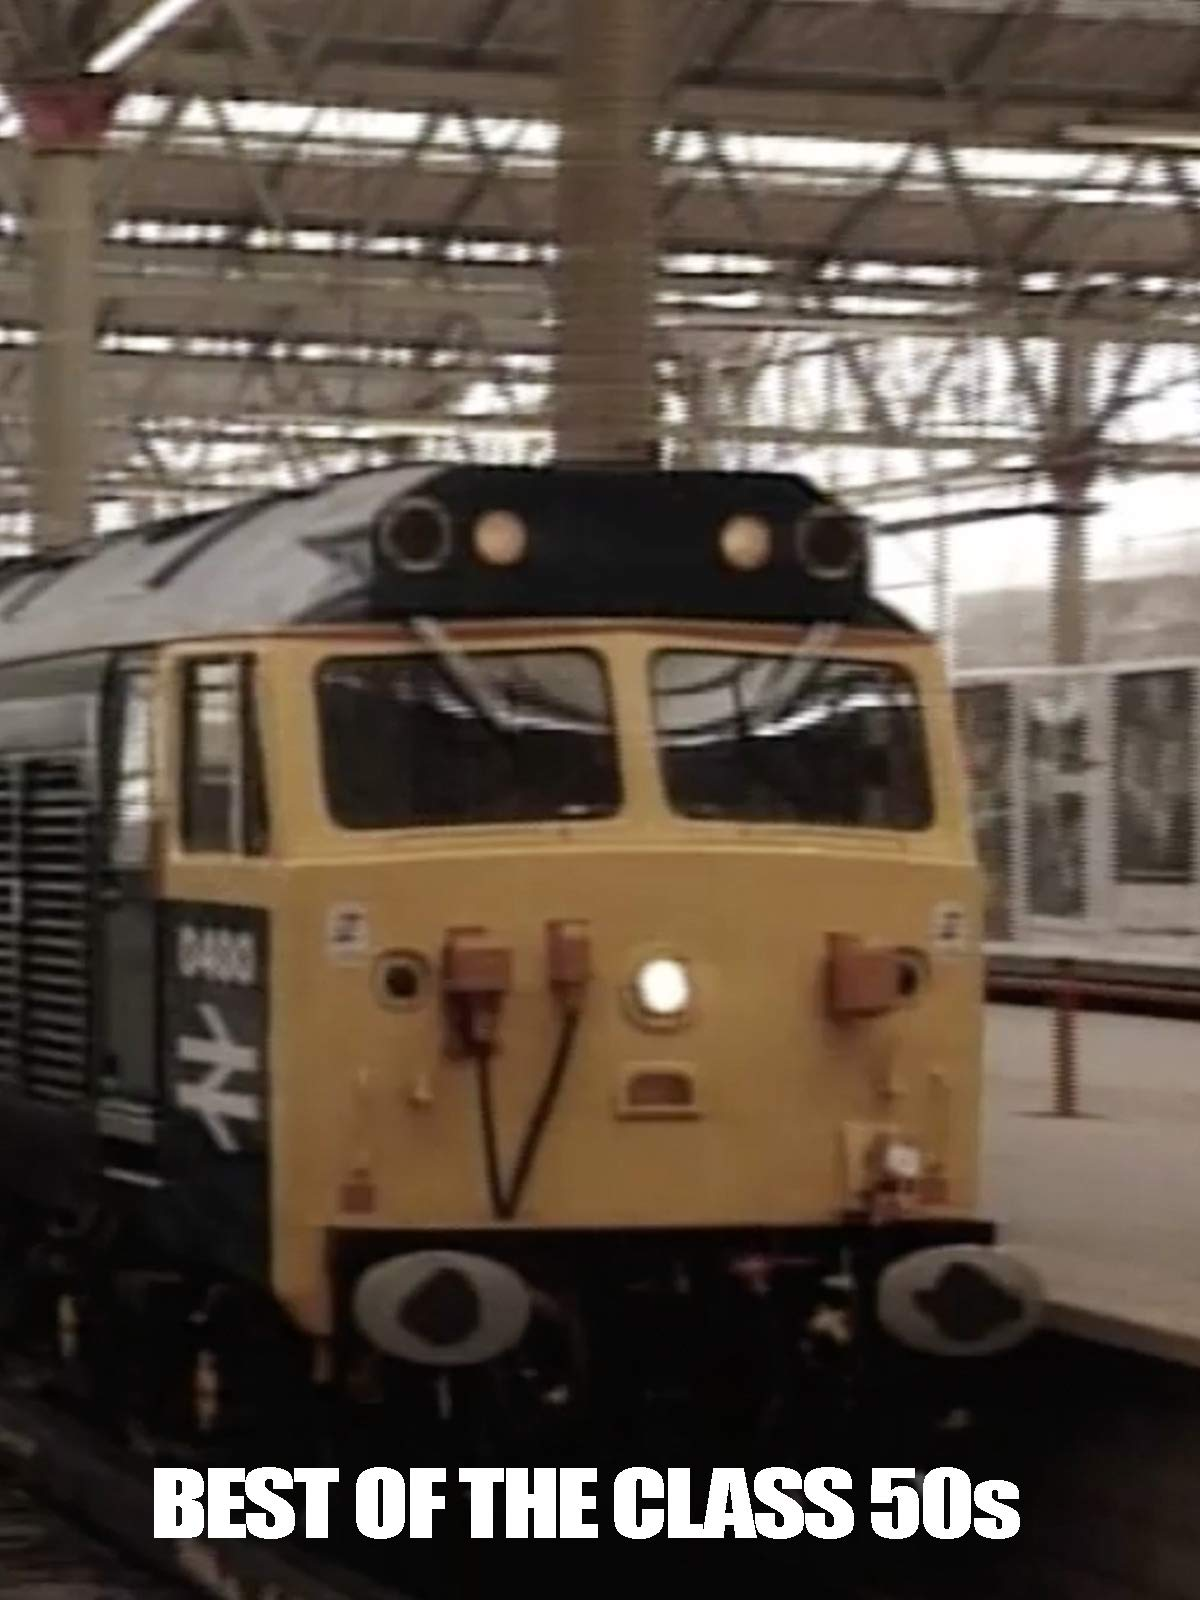 Best of the Class 50s